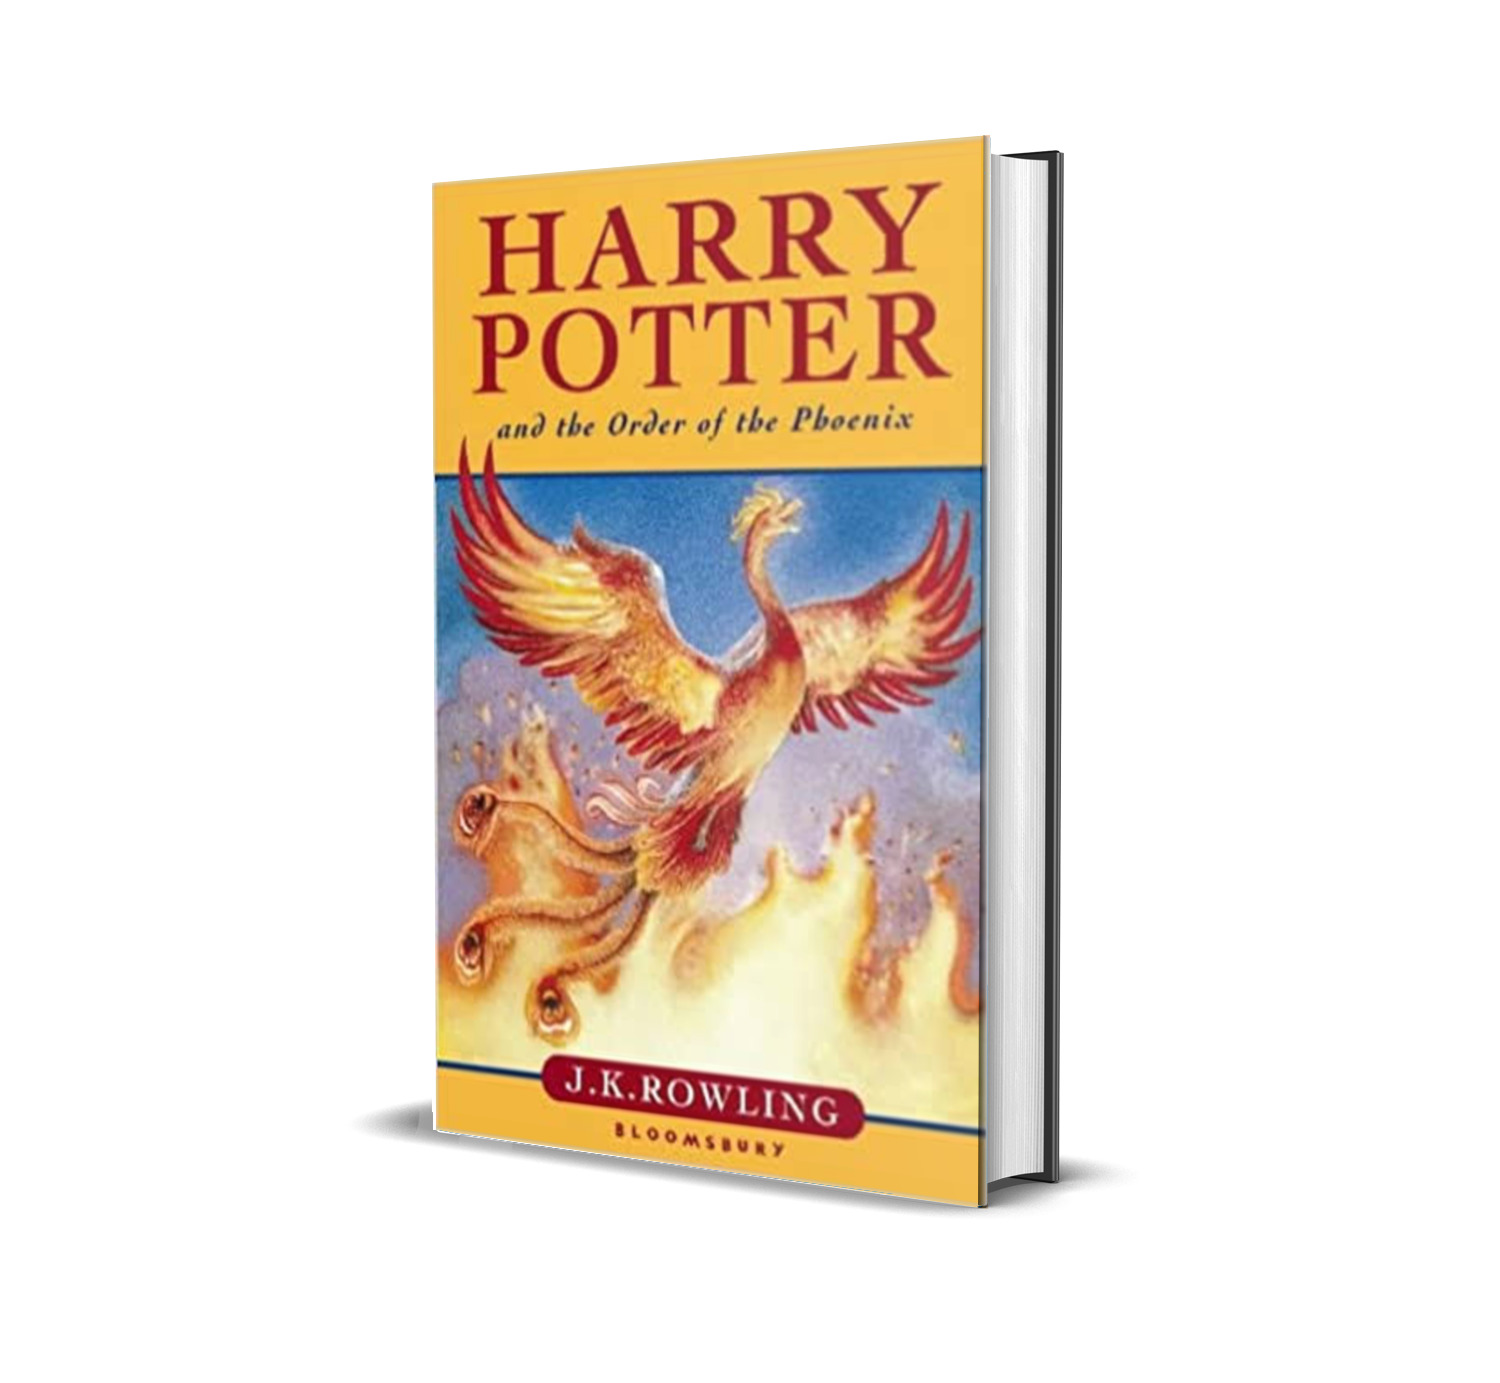 HARRY POTTER AND THE ORDER OF THE PHOENIX J. K ROWLING